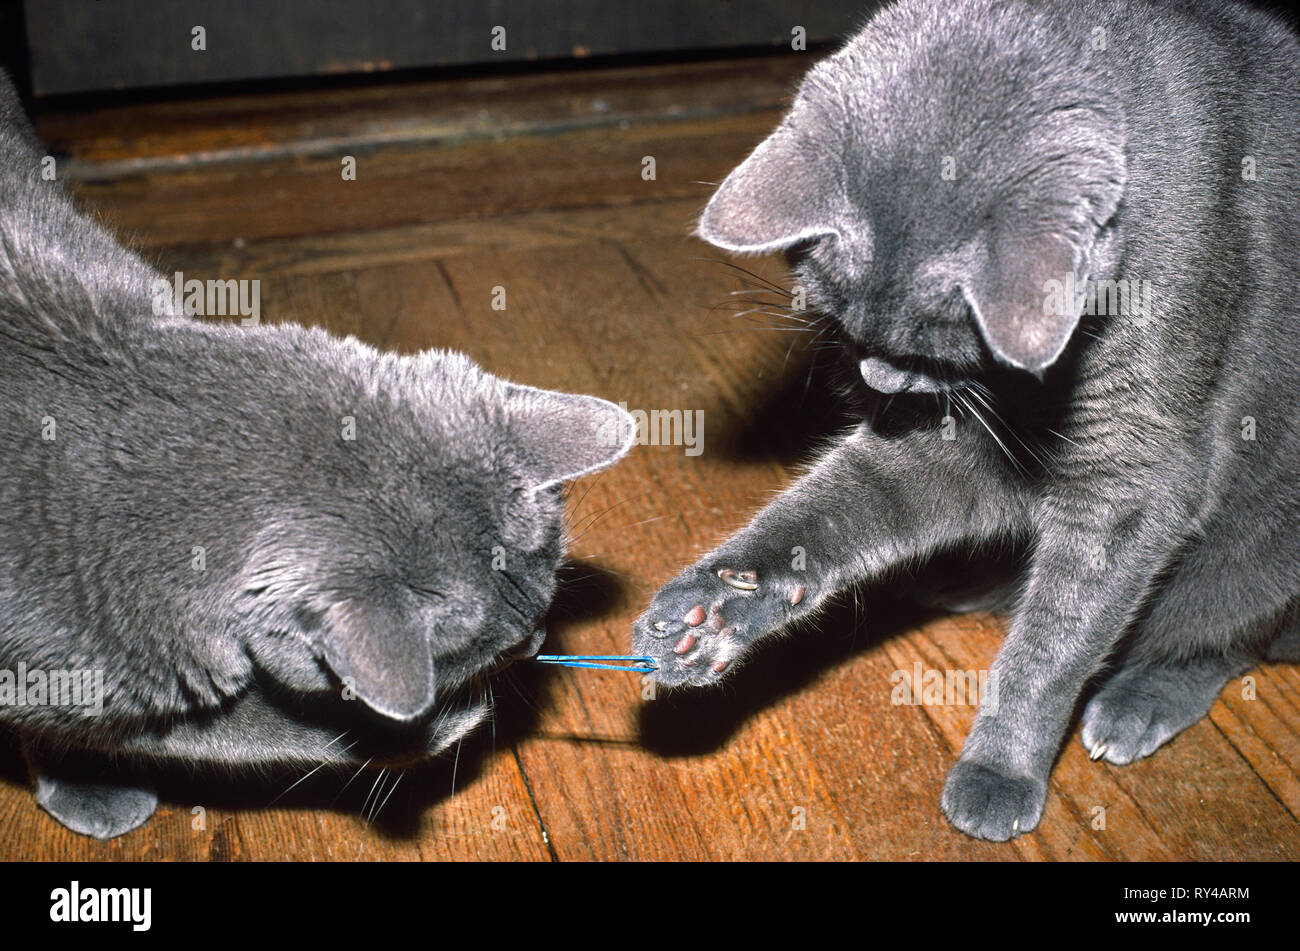 2 grey cats, playing with rubber band; paws holding; pets; fun, active, movement, felines, pets, horizontal; PR - Stock Image